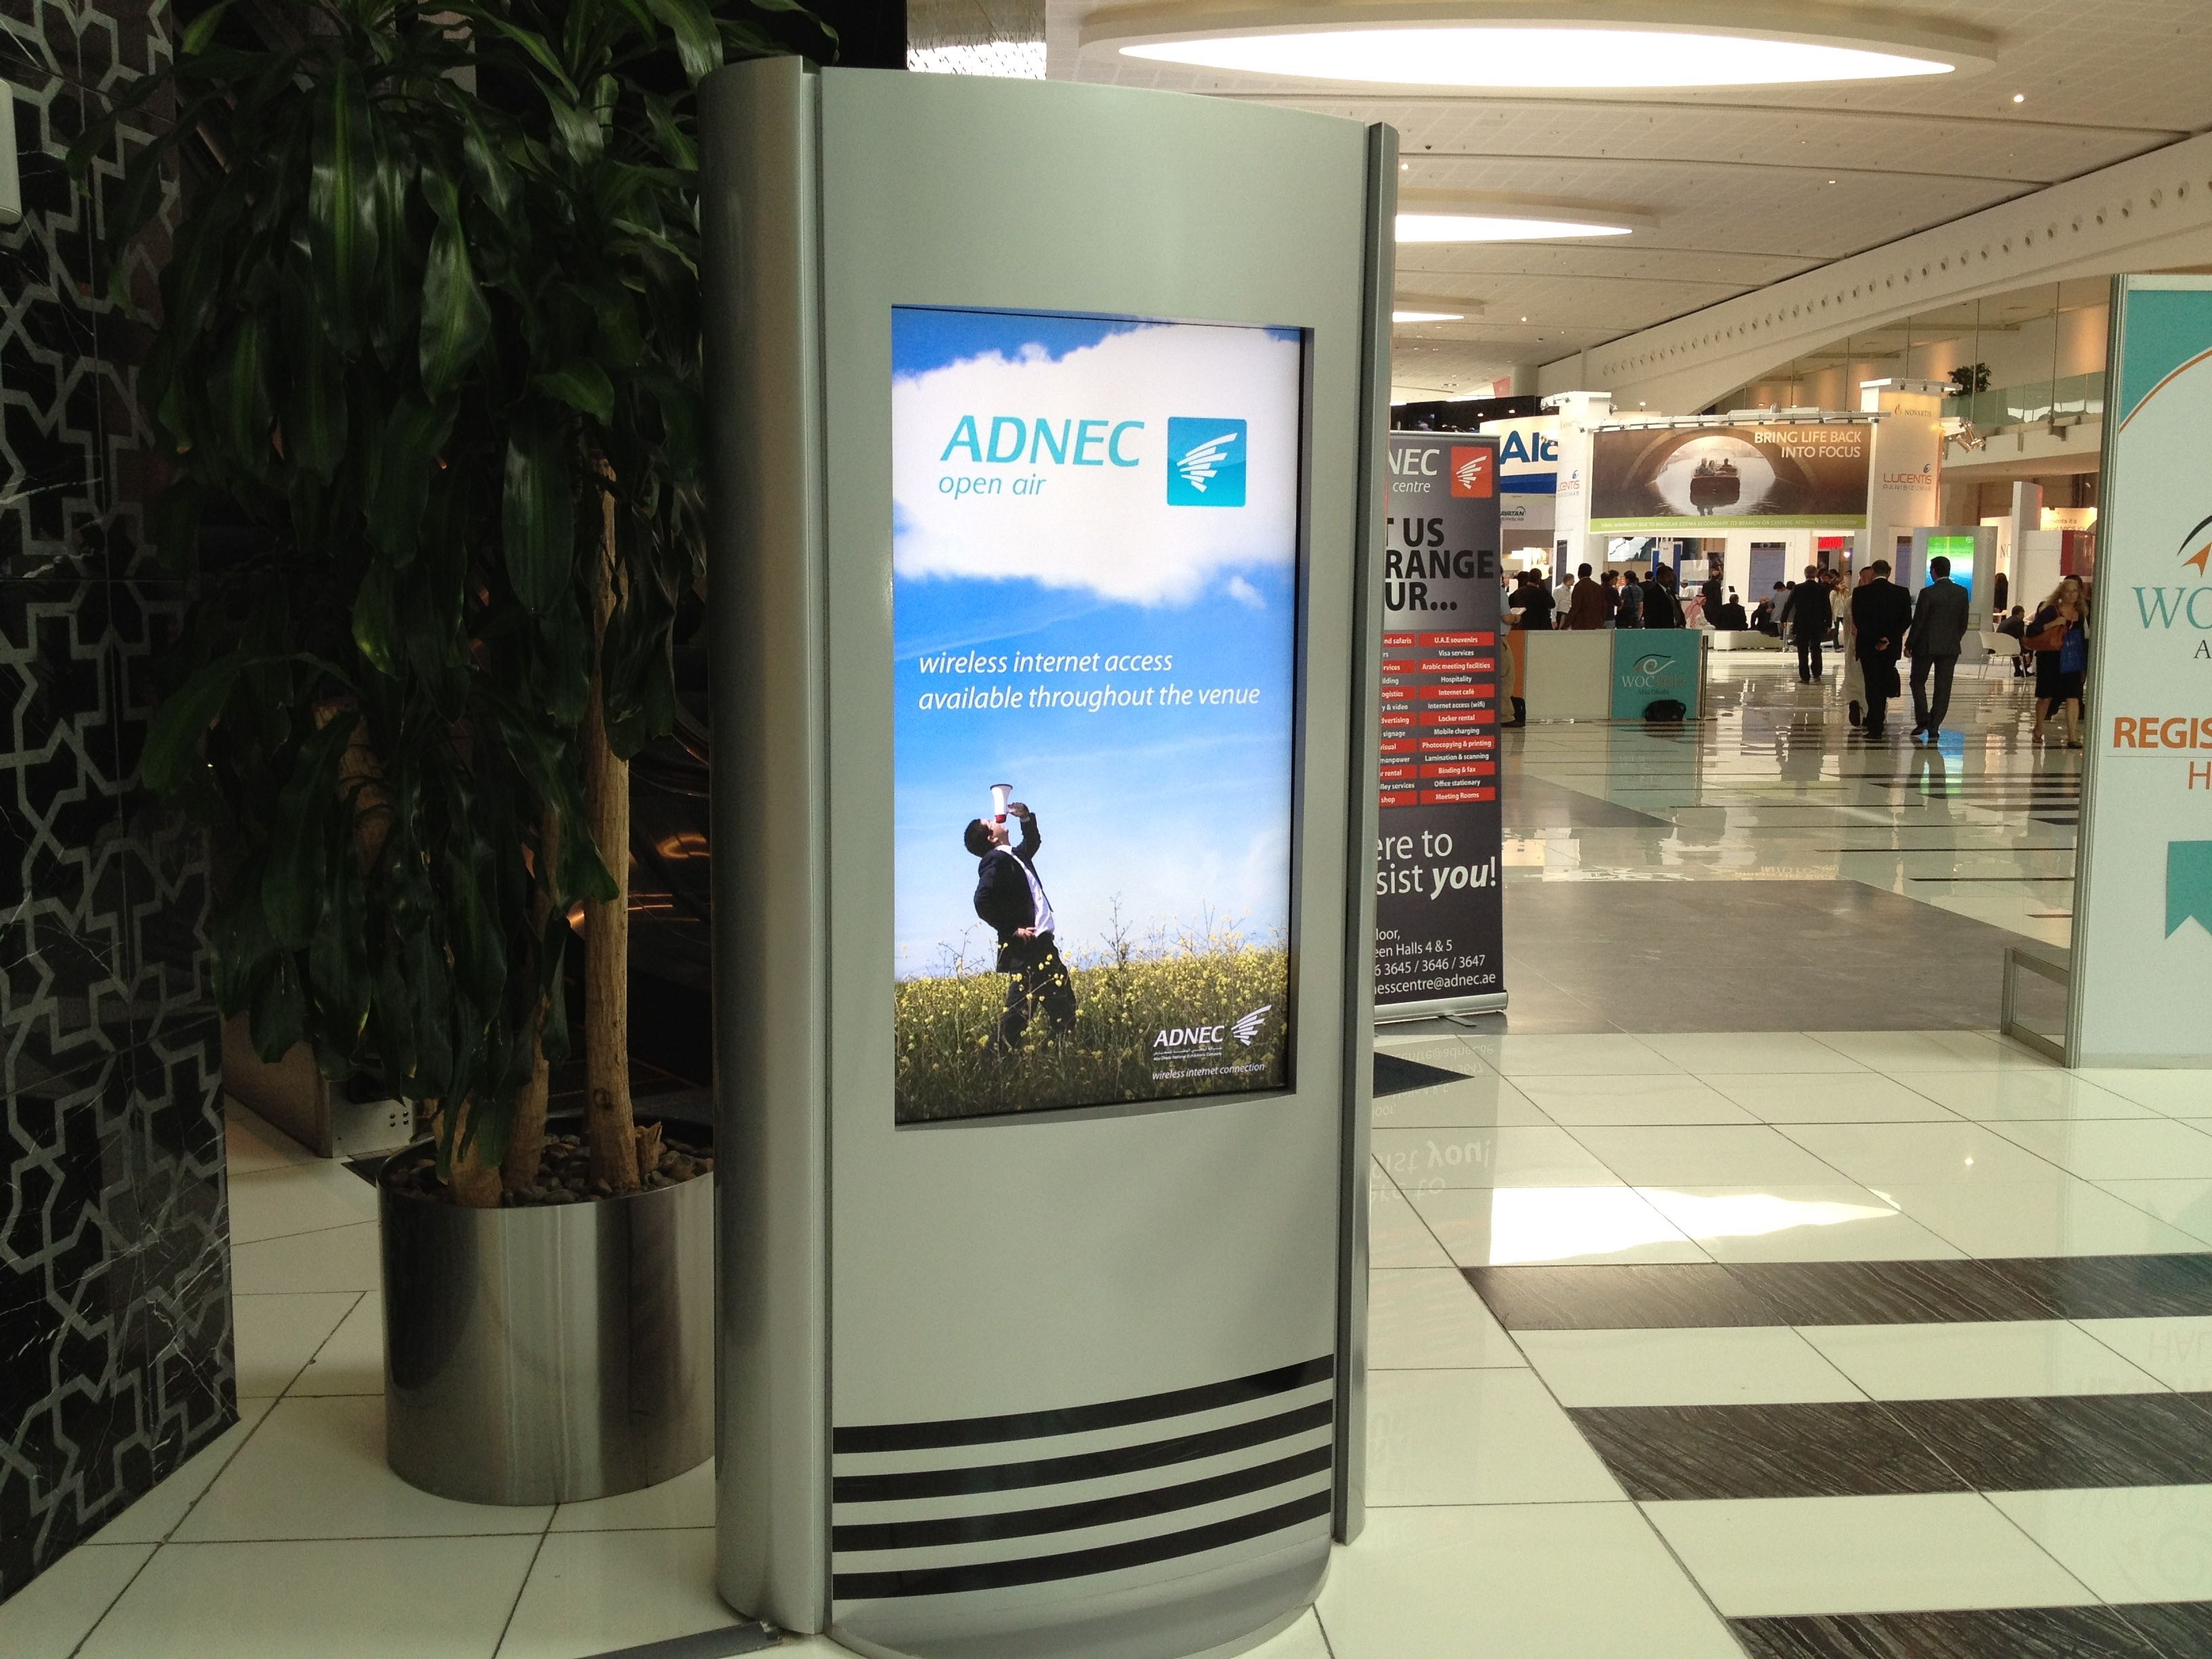 ADNEC Display Kiosks